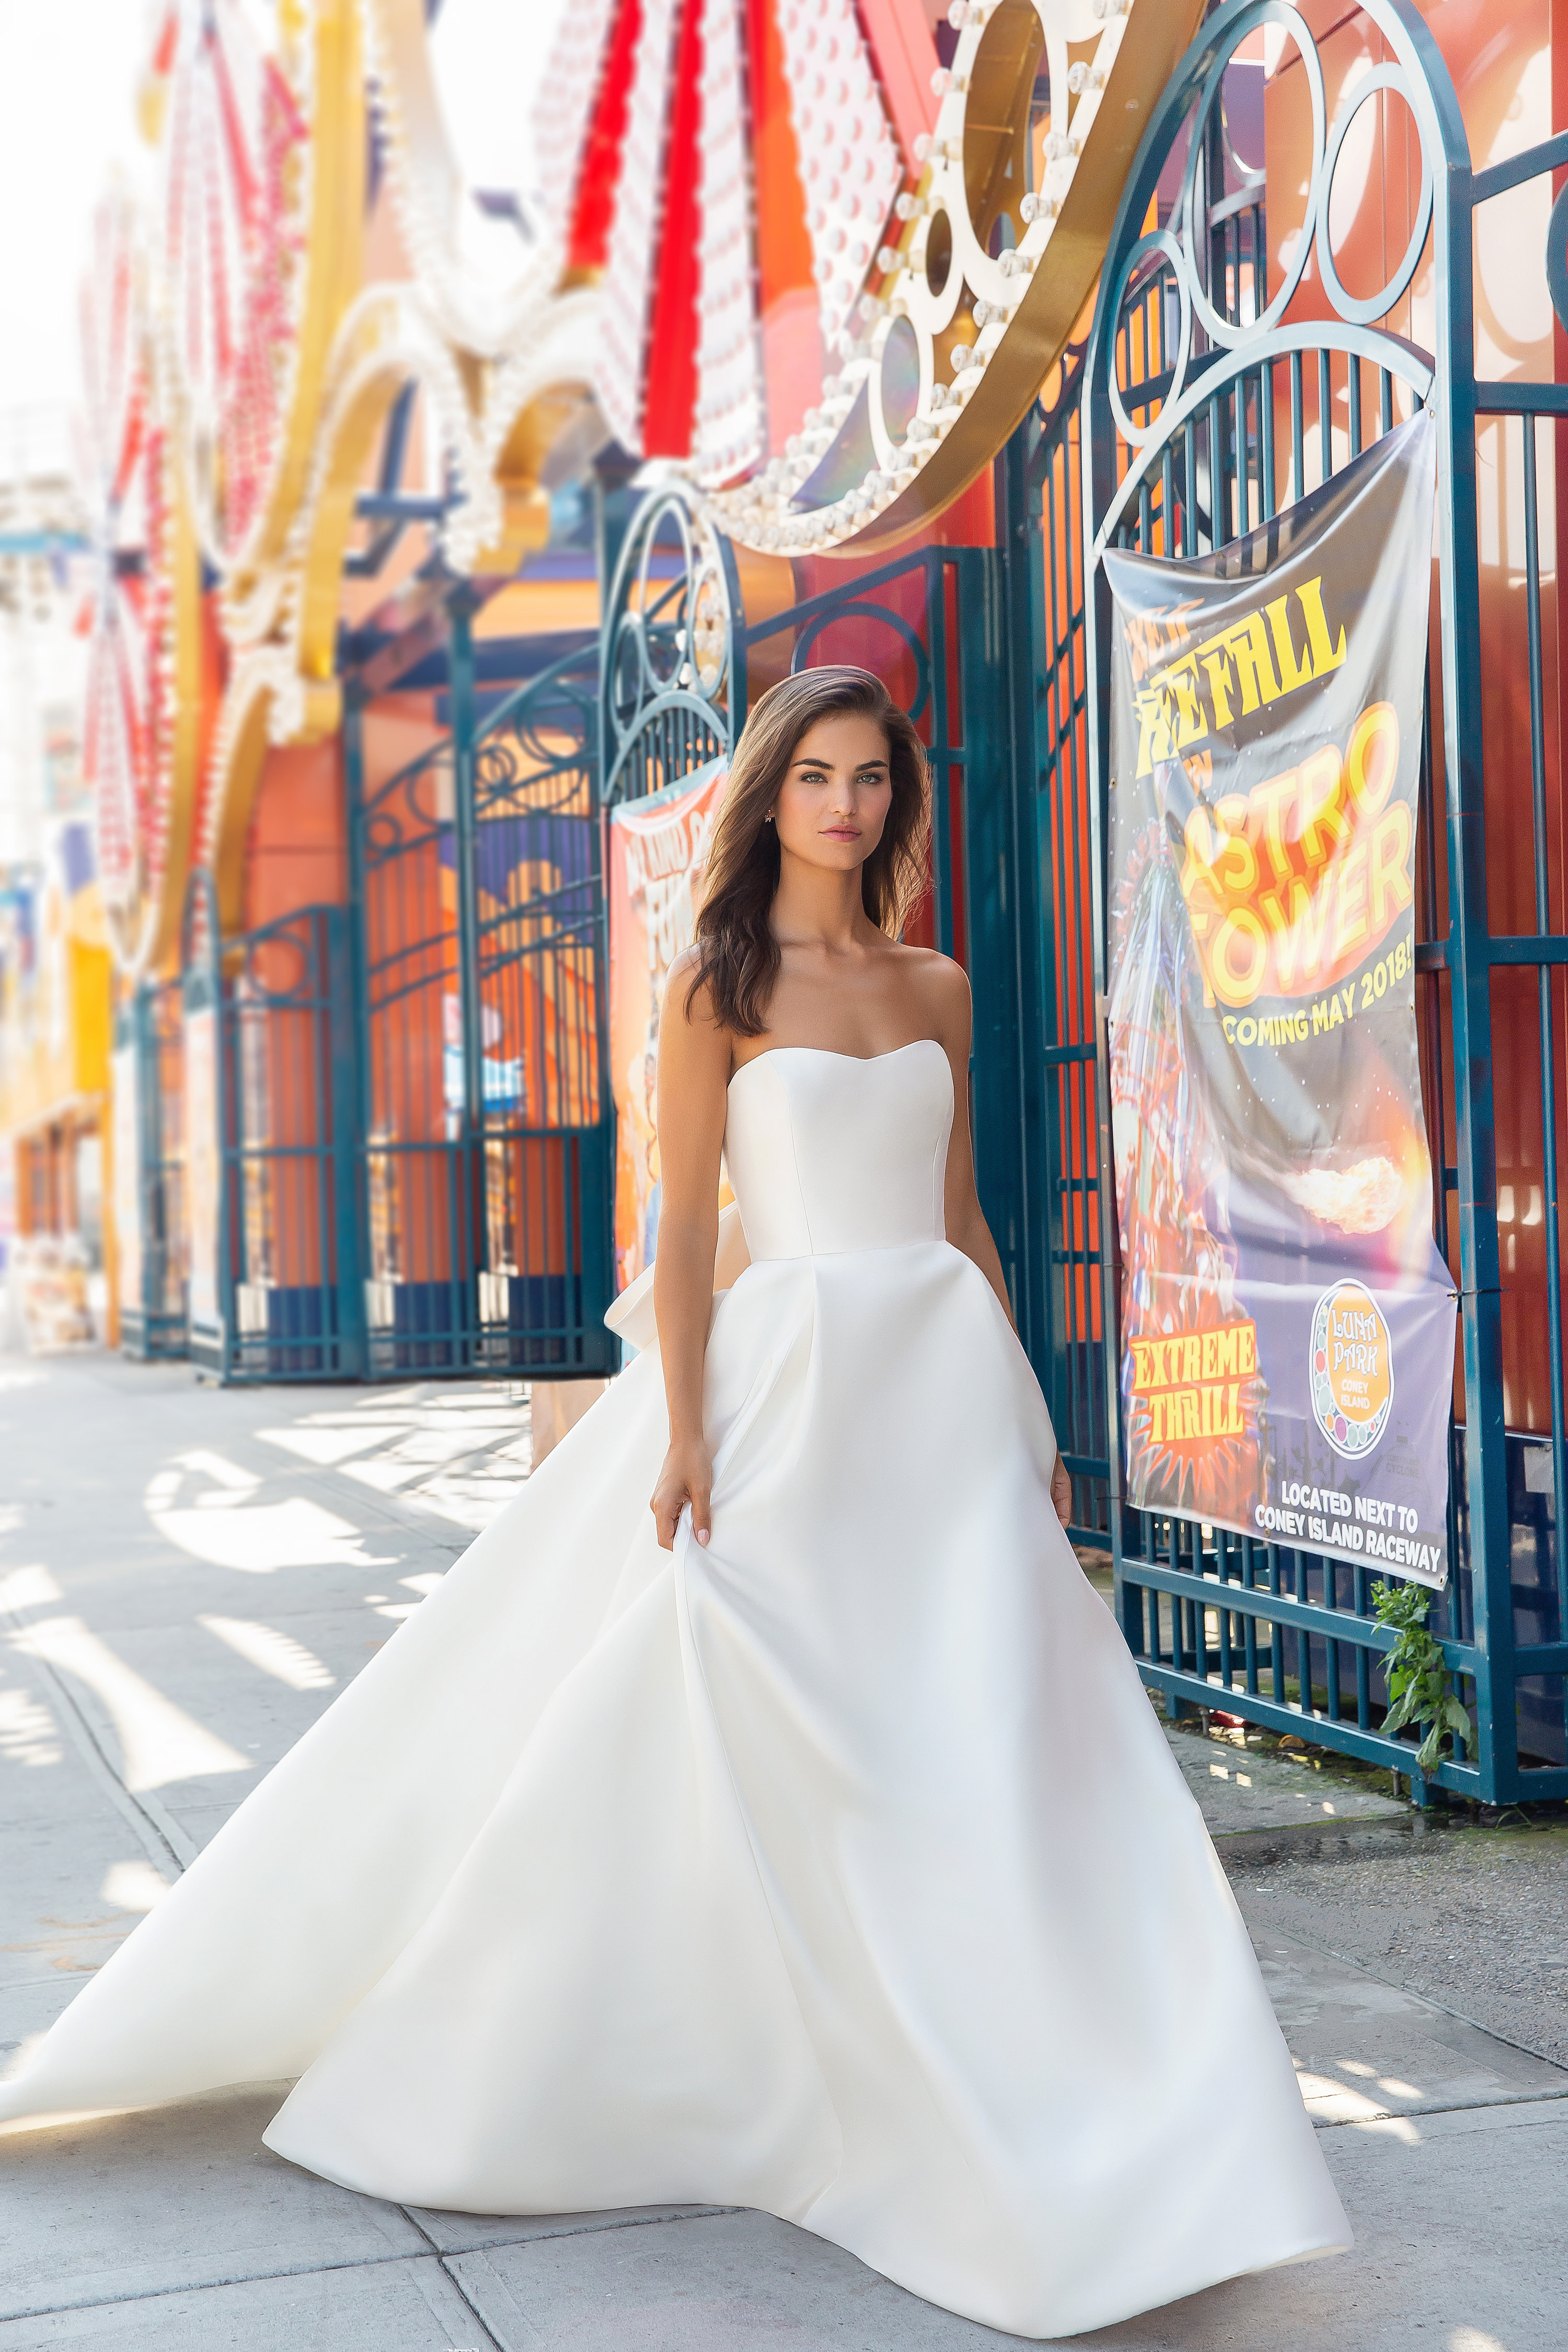 Bridal Gowns And Wedding Dresses By Jlm Couture Style 2861 Carolina